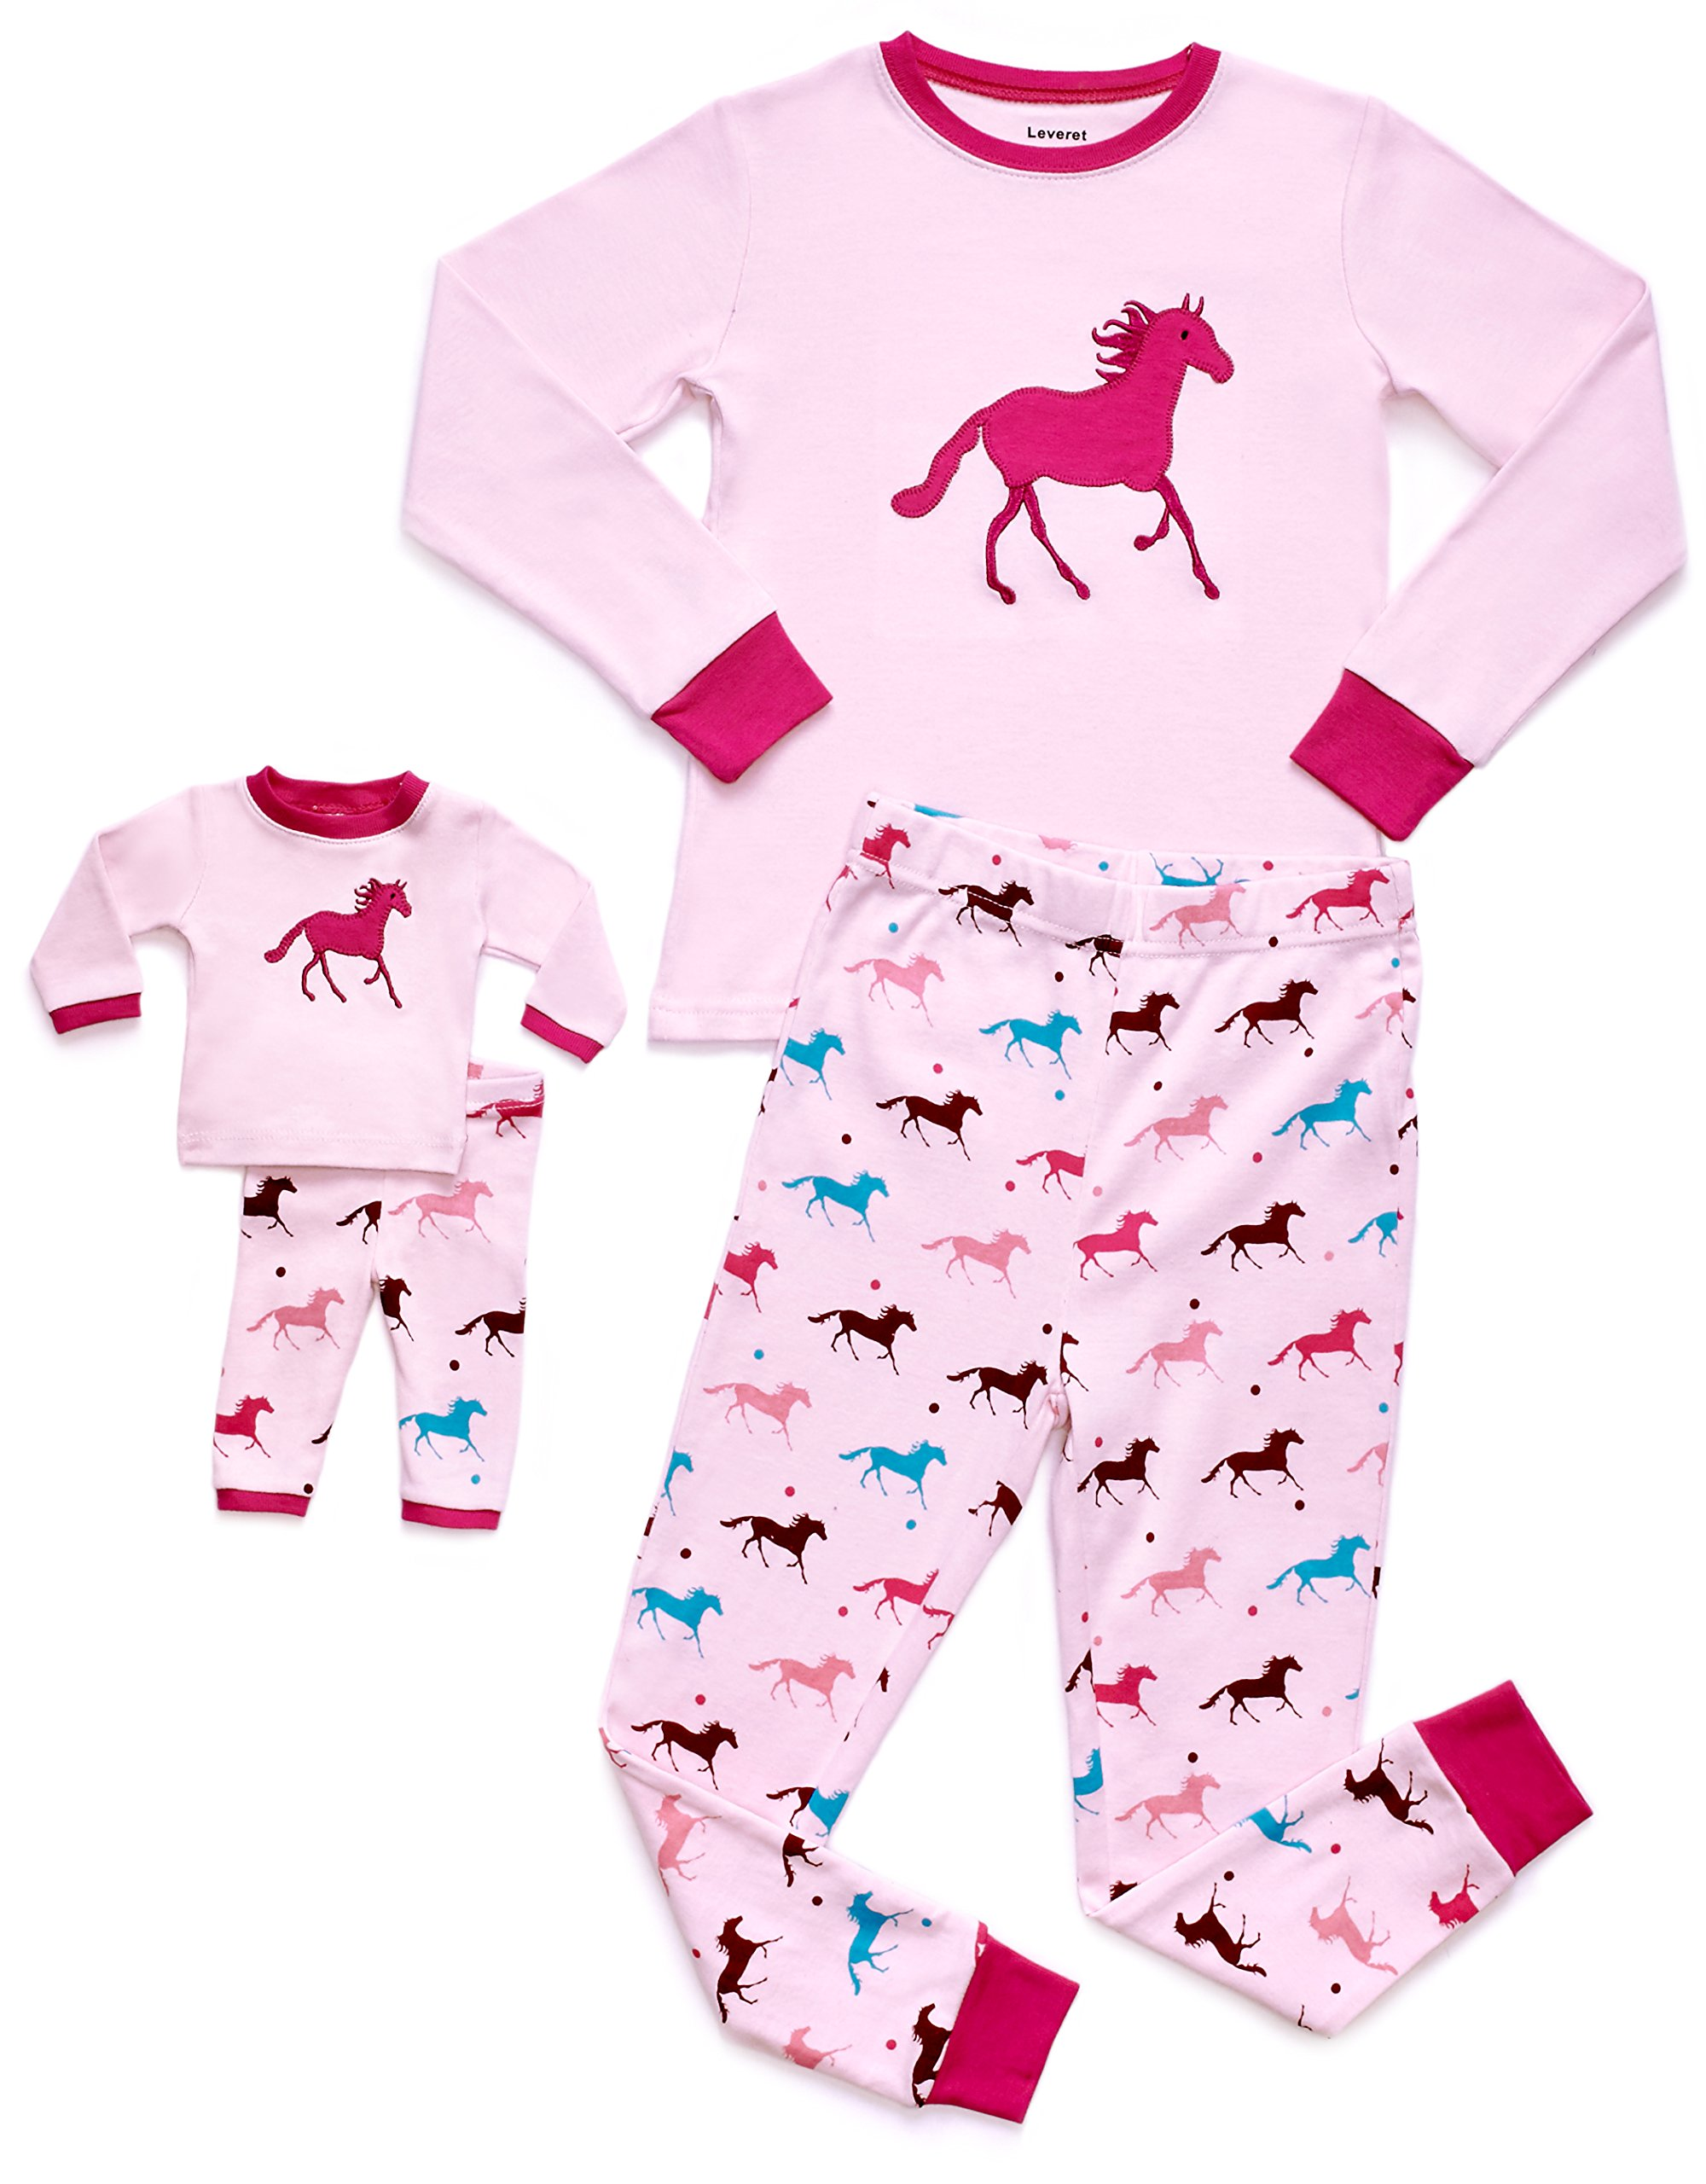 bb1ea3feaa Leveret Kids   Toddler Pajamas Matching Doll   Girls Pajamas 100% Cotton 2  Piece Pjs